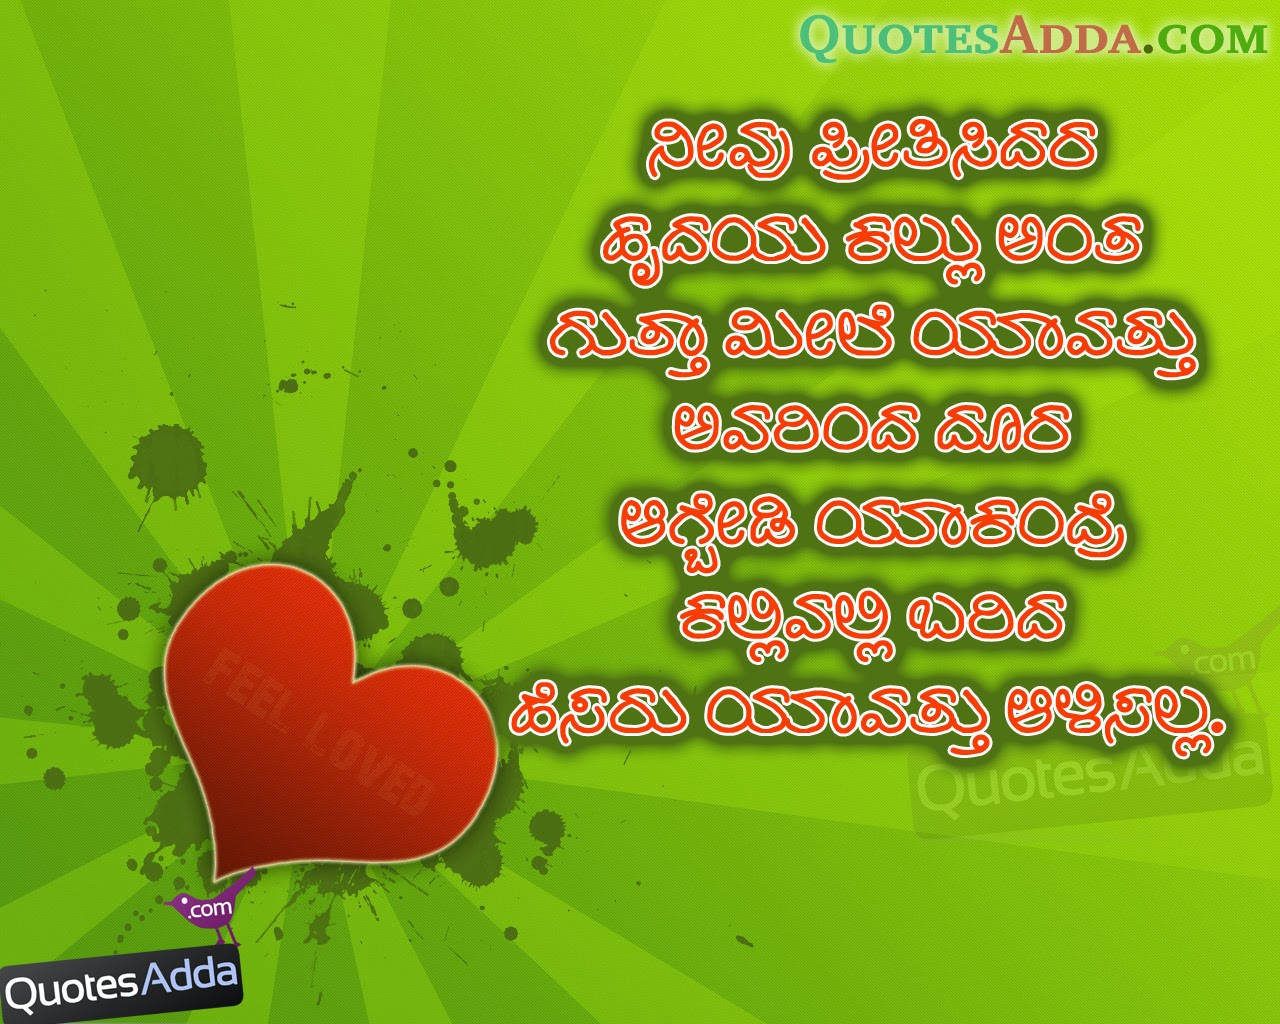 Sad Quotes About Love In Kannada : Kannada Love Quotes 1 Quotes Adda.com Telugu Quotes Tamil Quotes ...